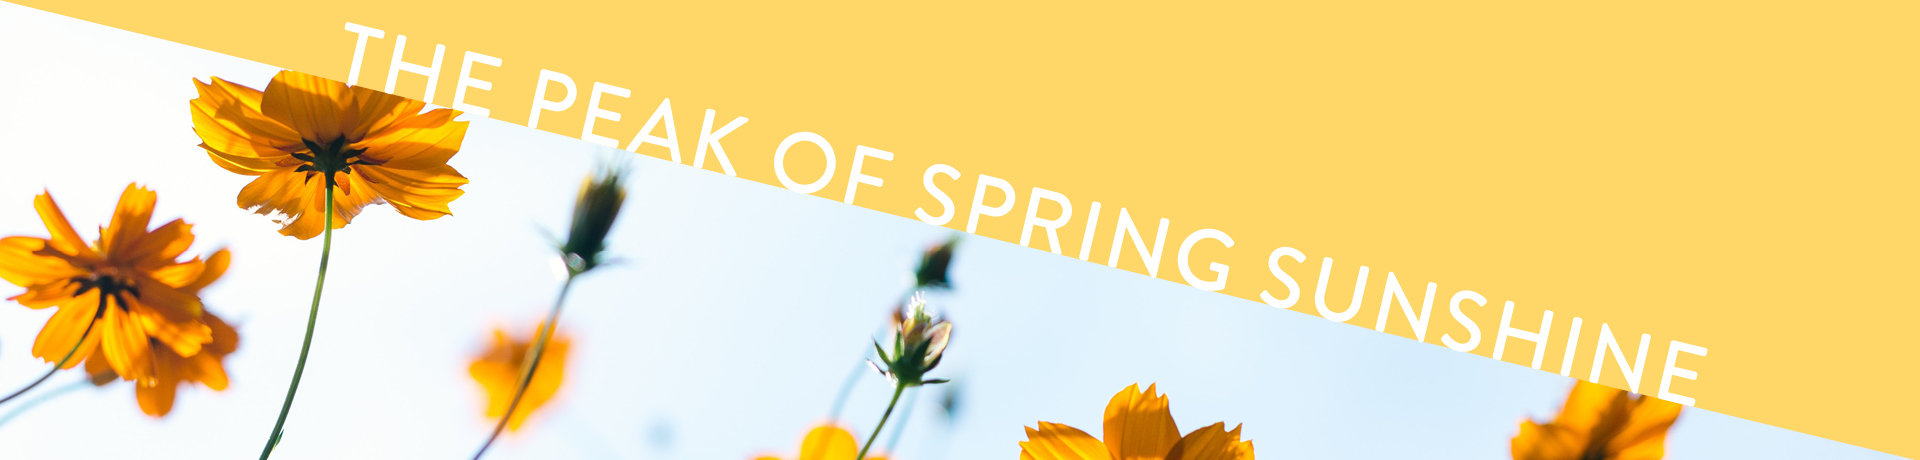 blog spring sunshine